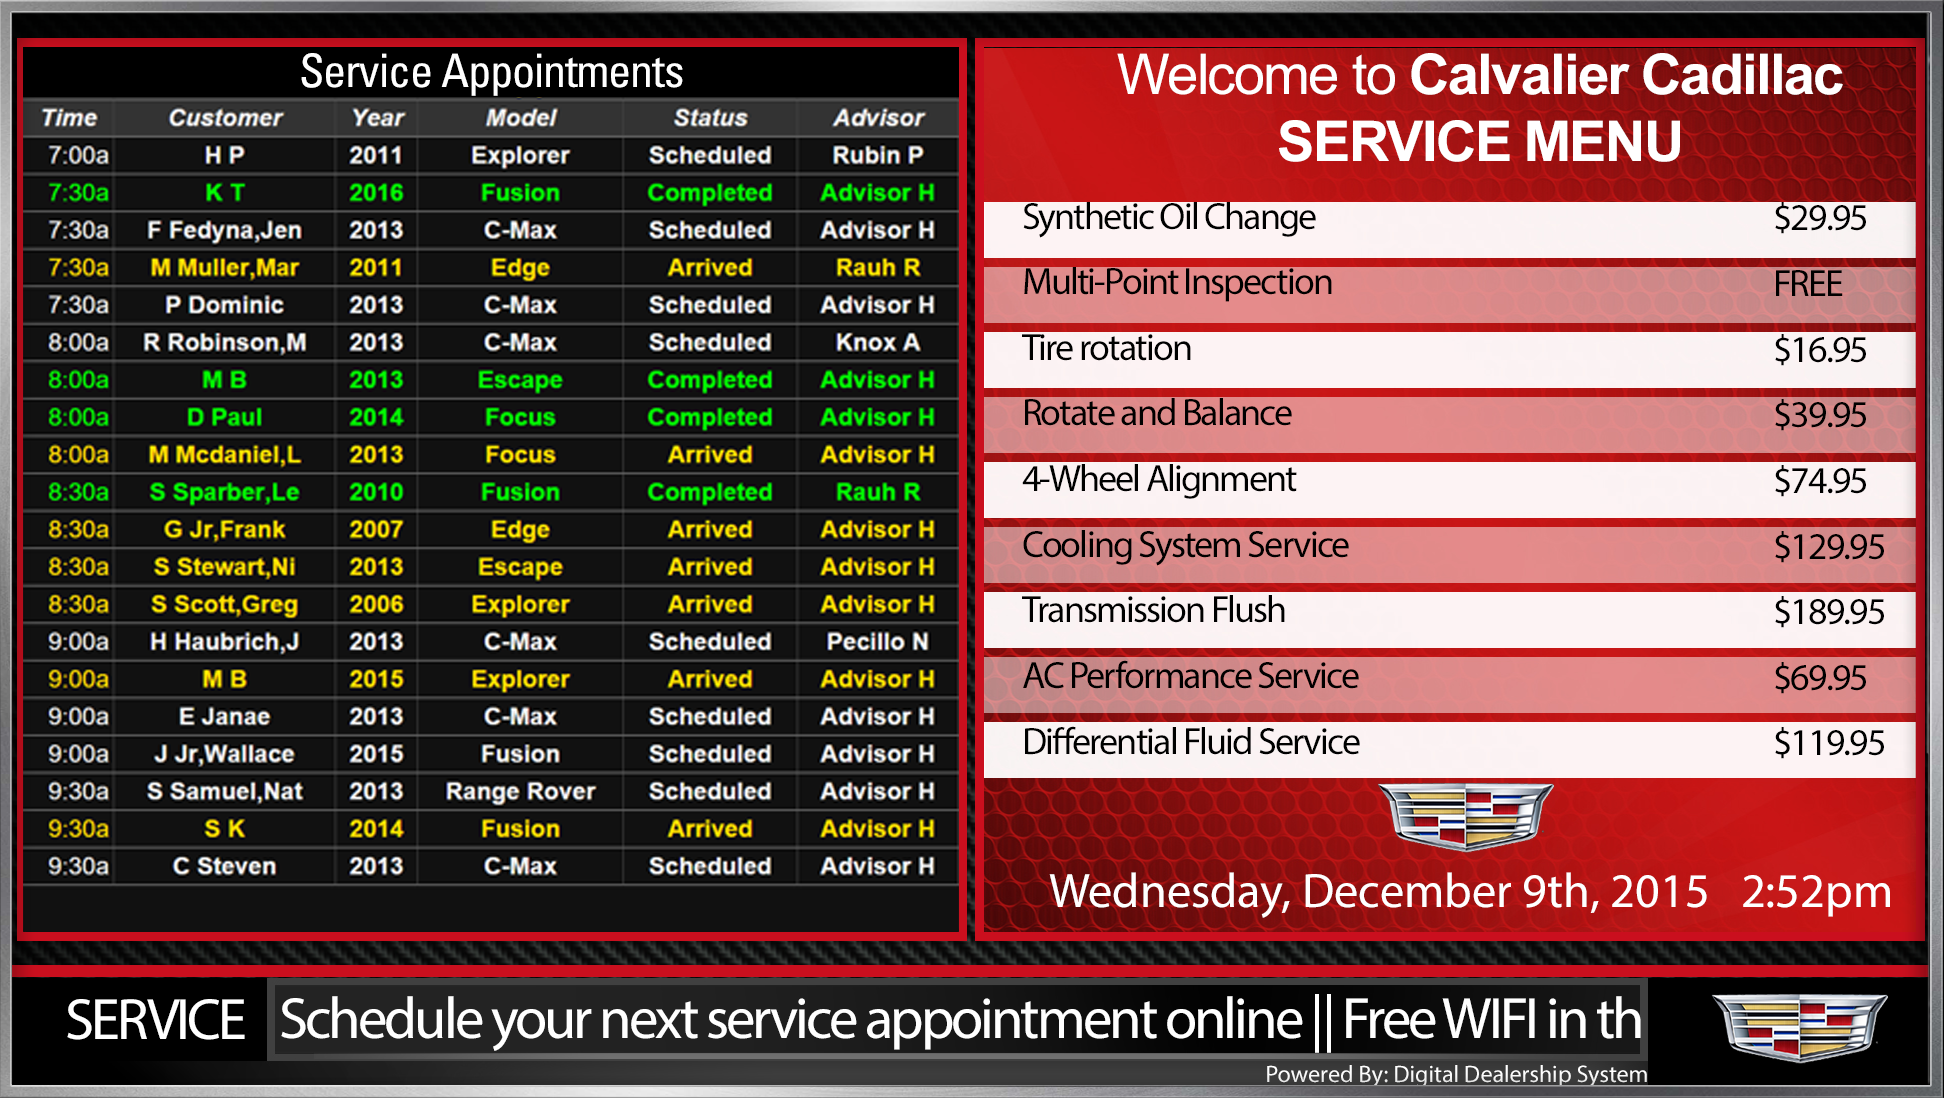 cadillac service appointment menu sign